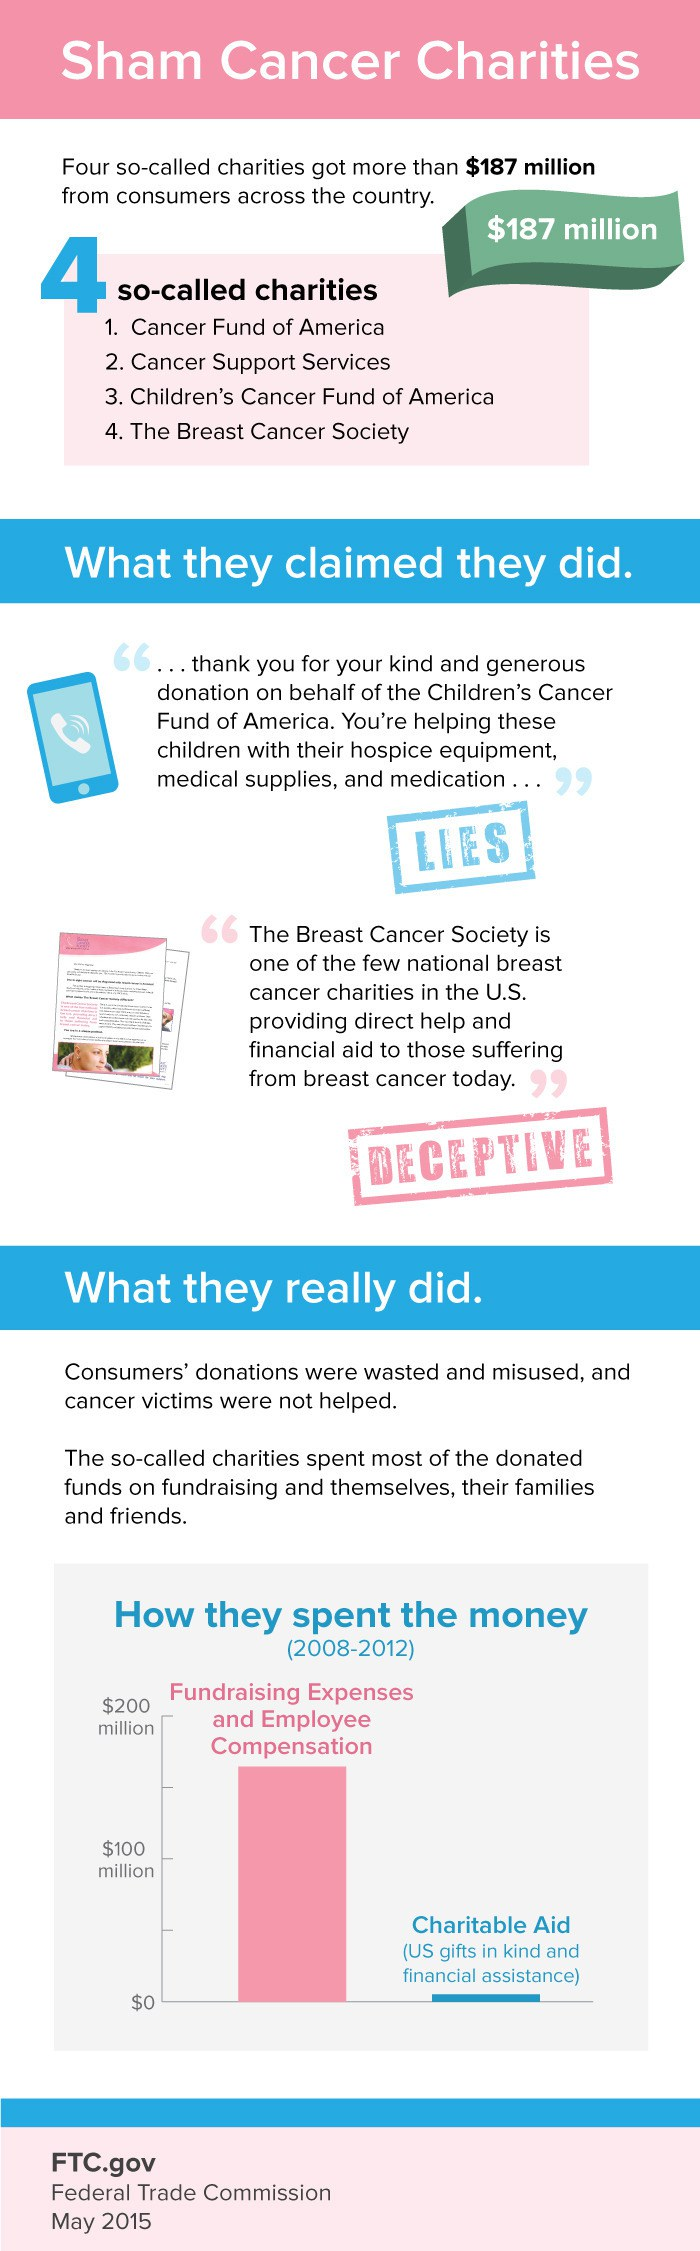 sham-cancer-charities-infographic